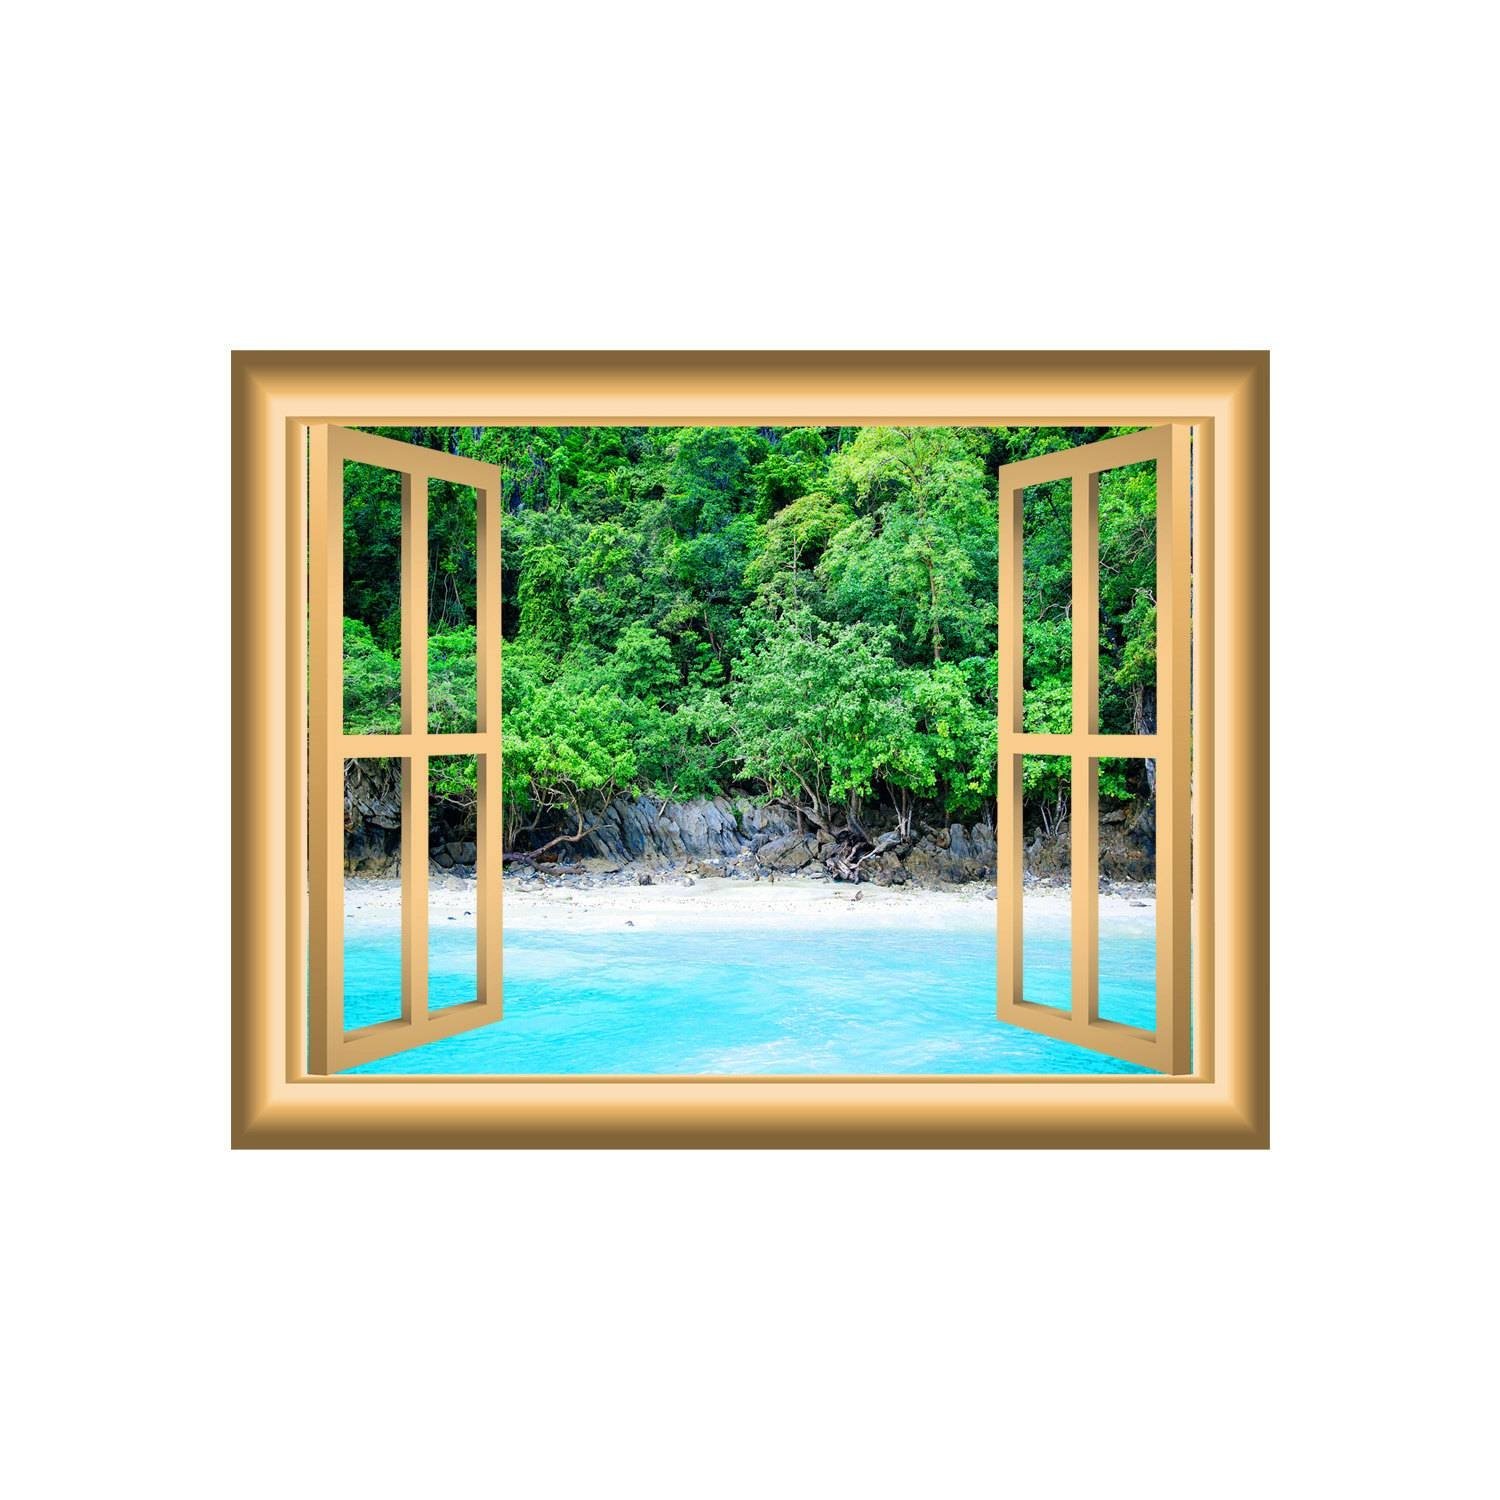 3D Wall Art Beach Scenery Decal Ocean And Trees Window Frame Regarding Best And Newest Beach 3D Wall Art (Gallery 12 of 20)